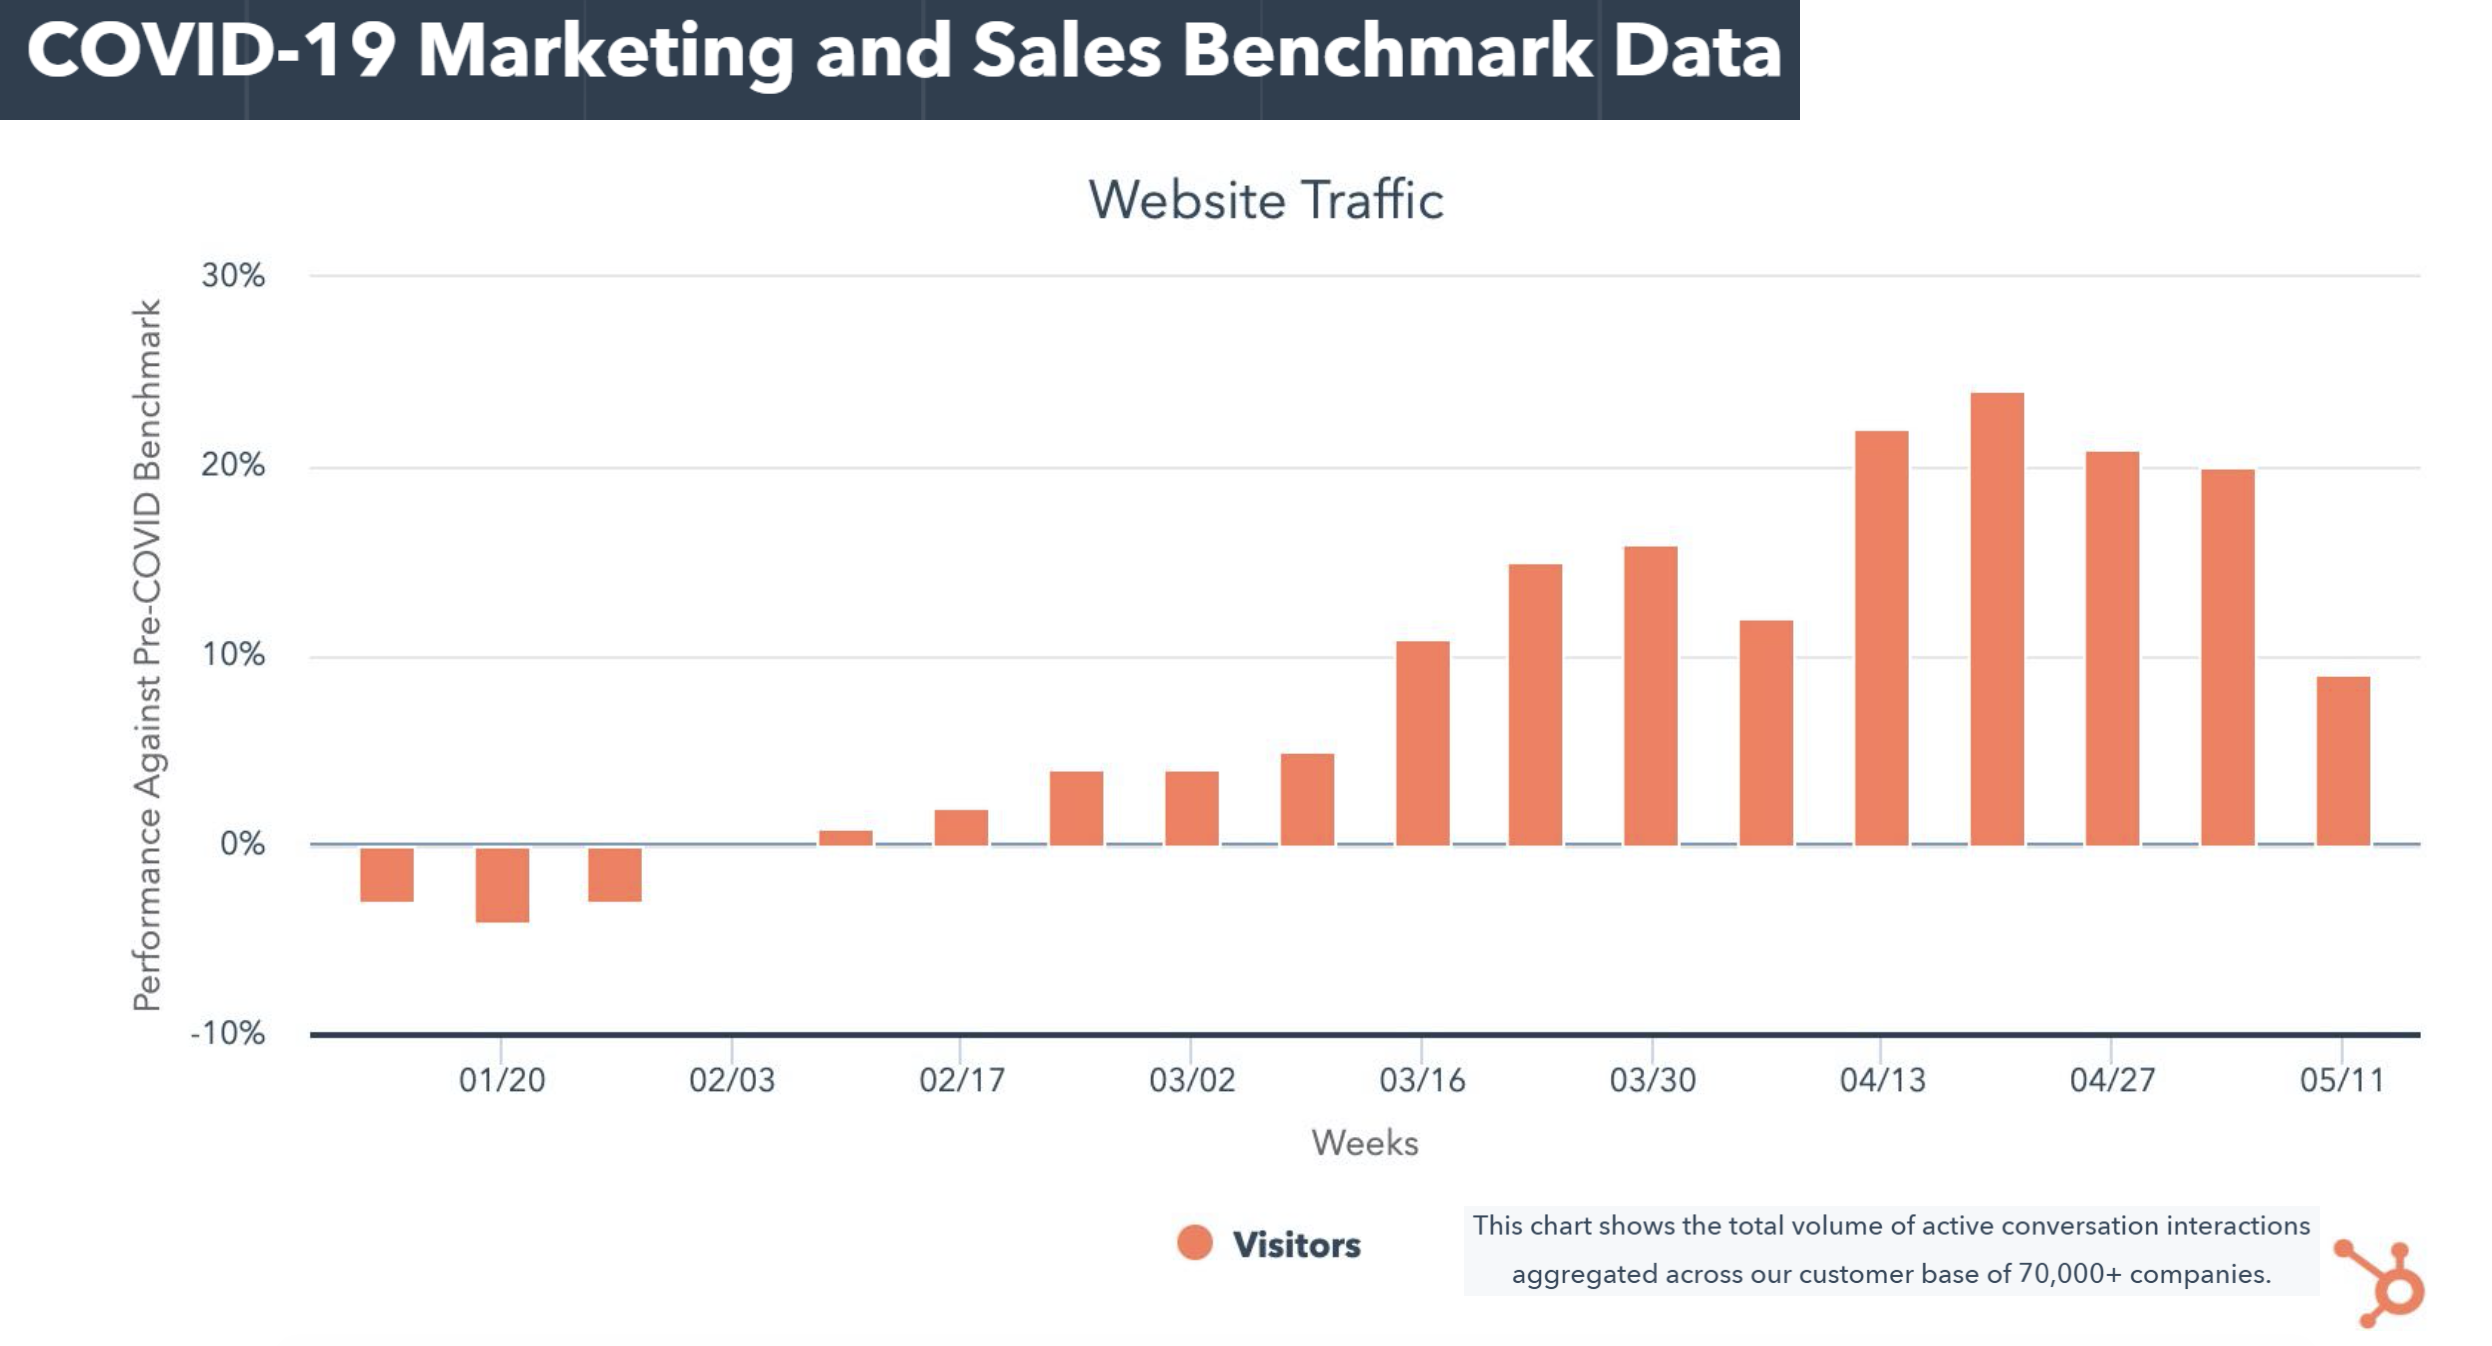 website traffic data